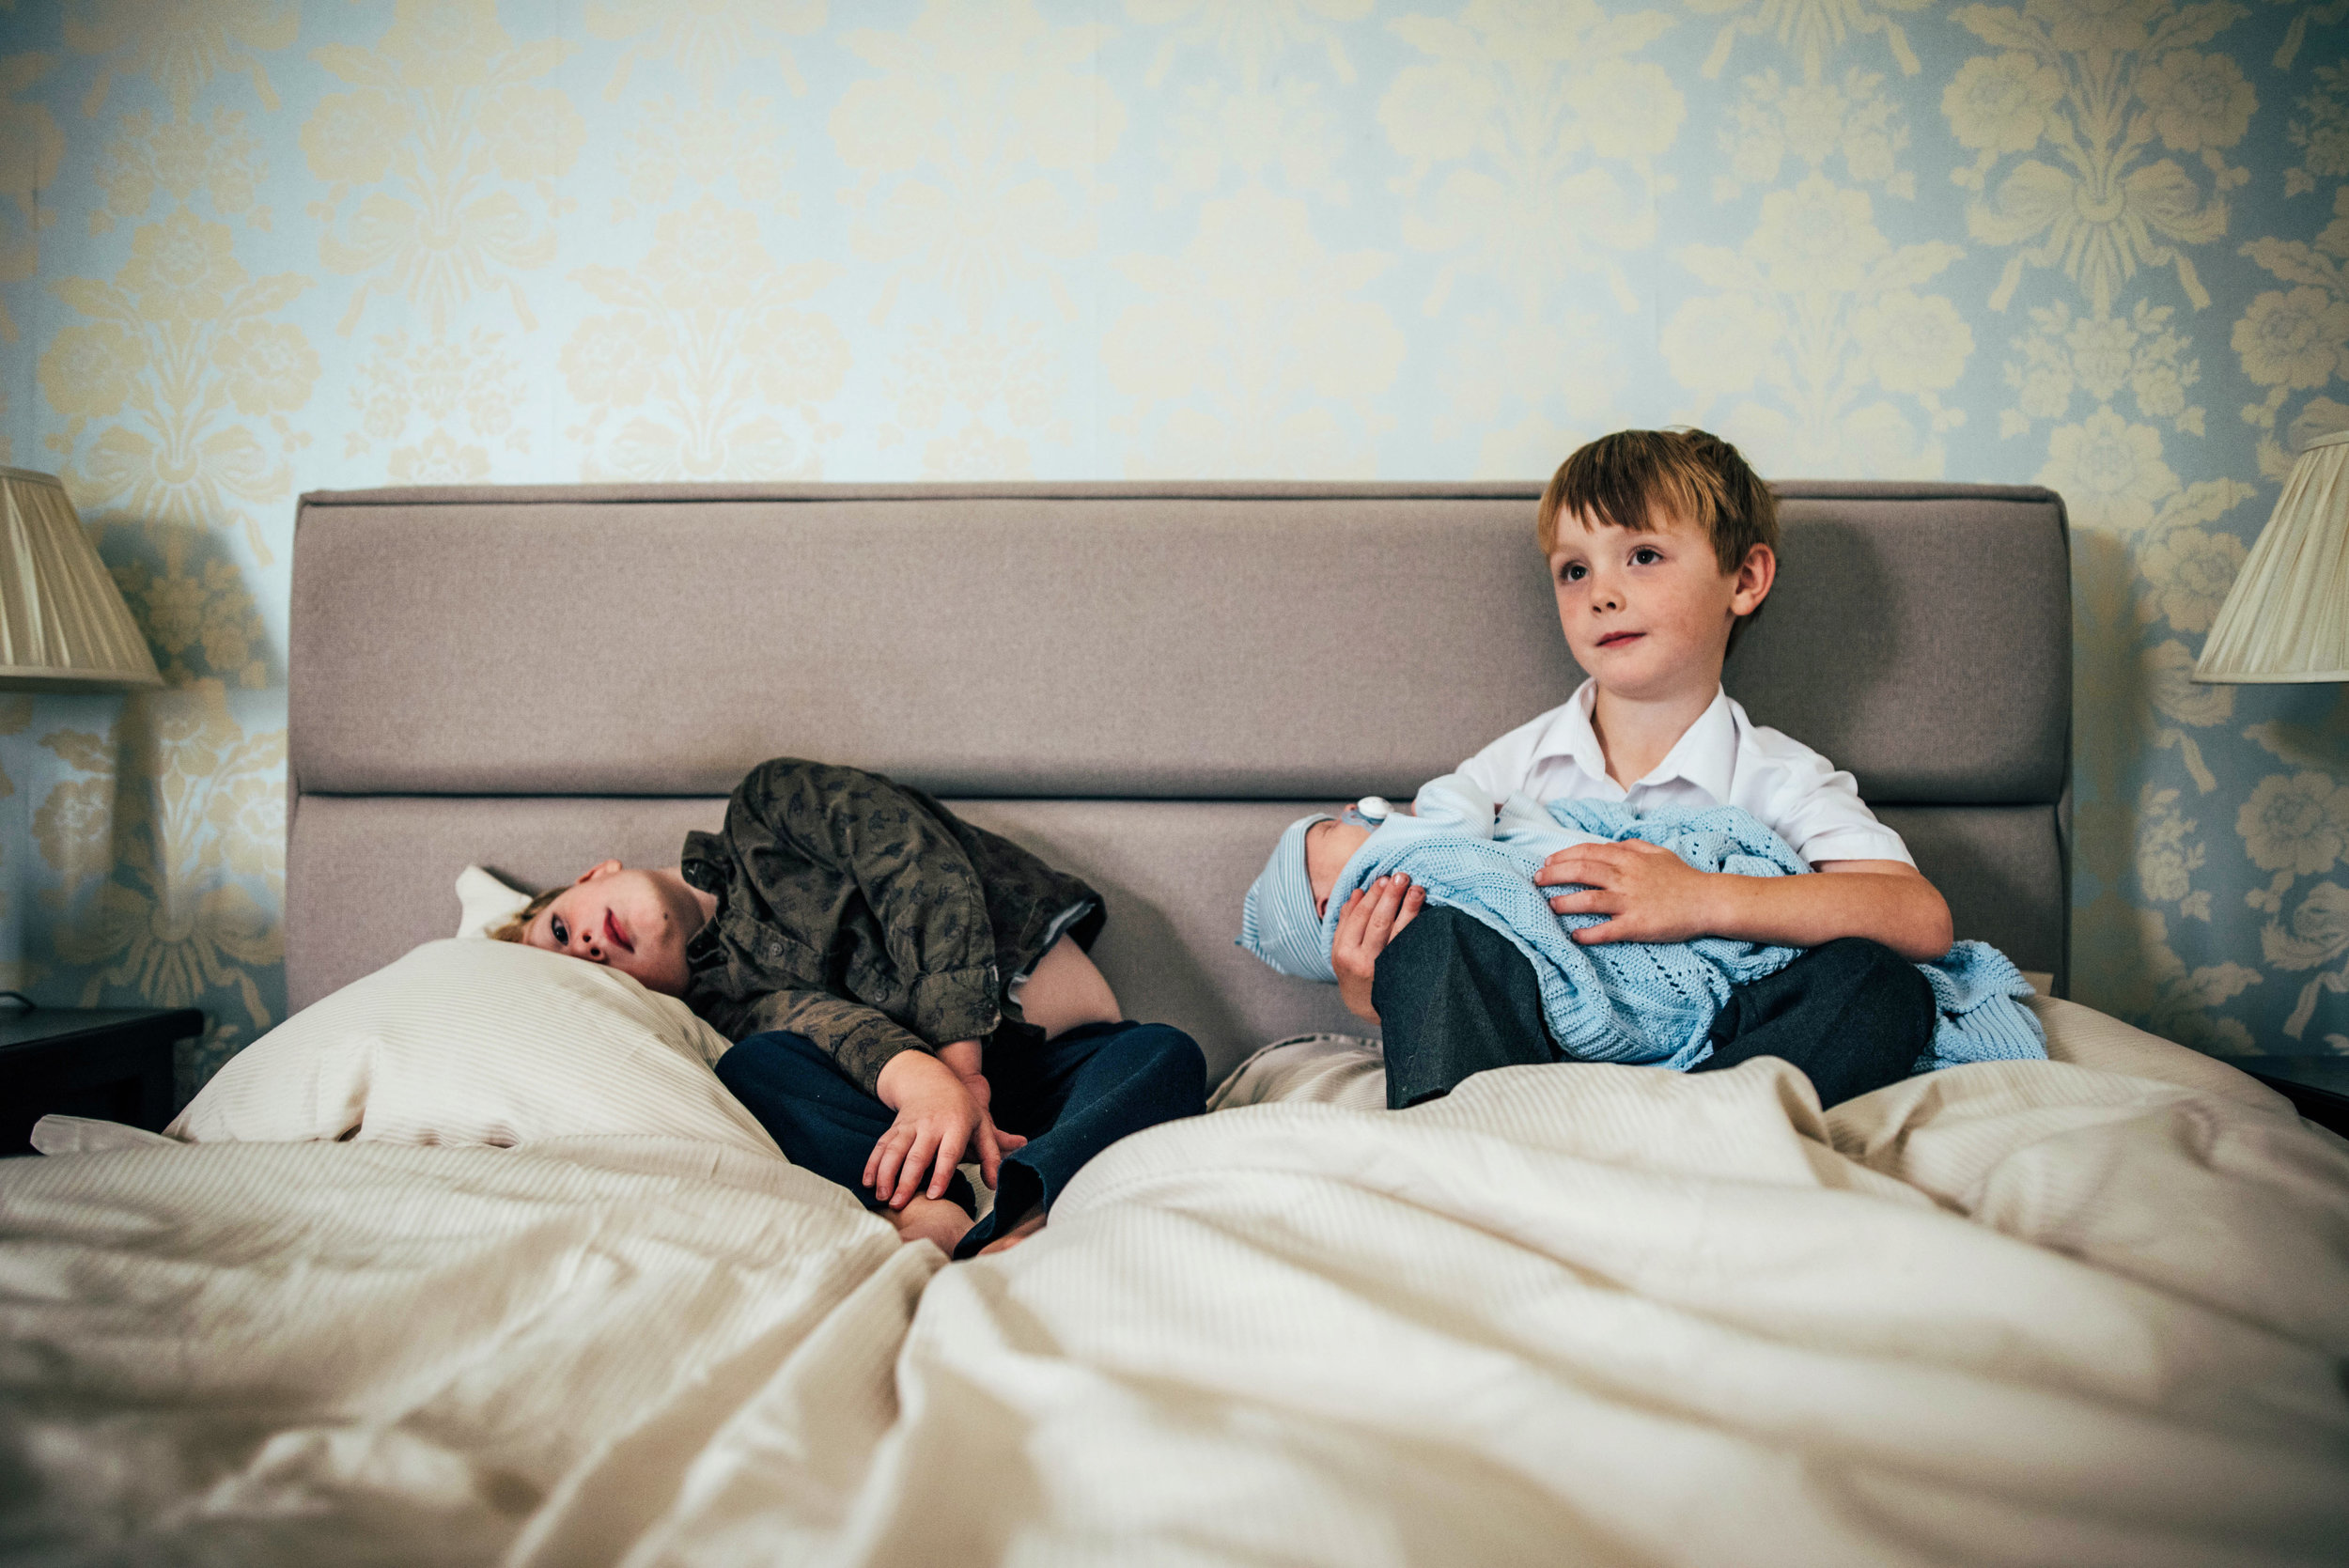 two boys hold baby brother on bed essex documentary portrait photographer